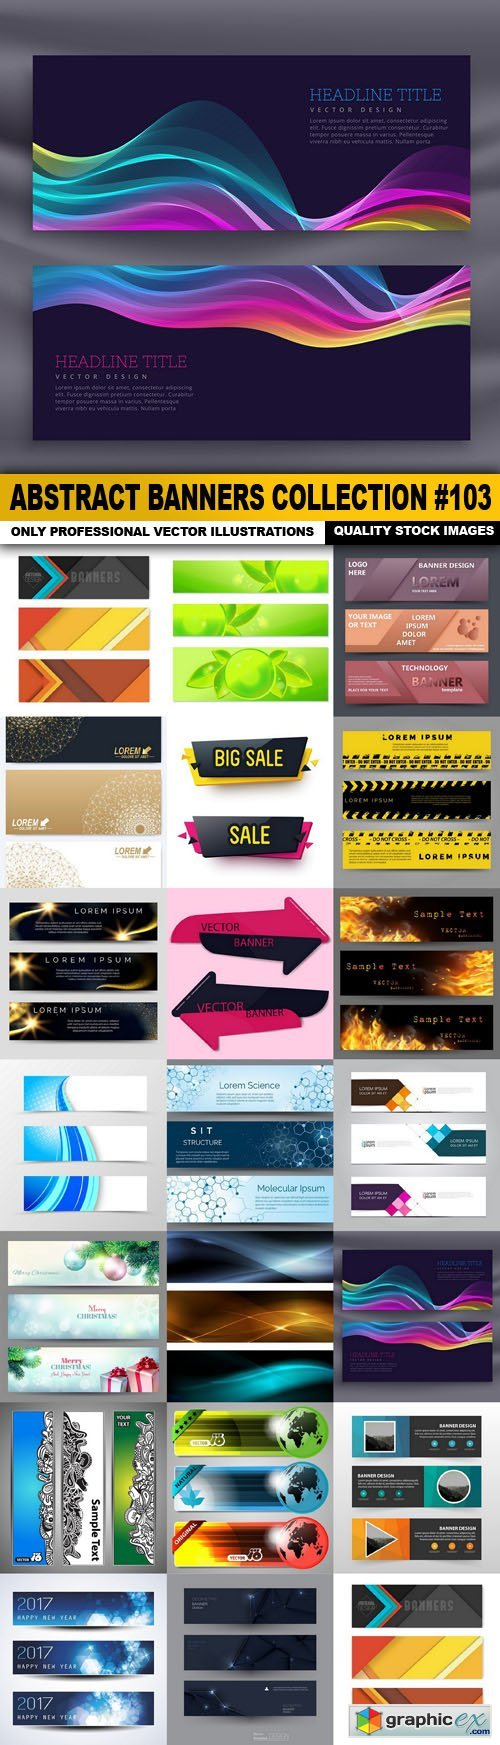 Abstract Banners Collection #103 - 20 Vectors